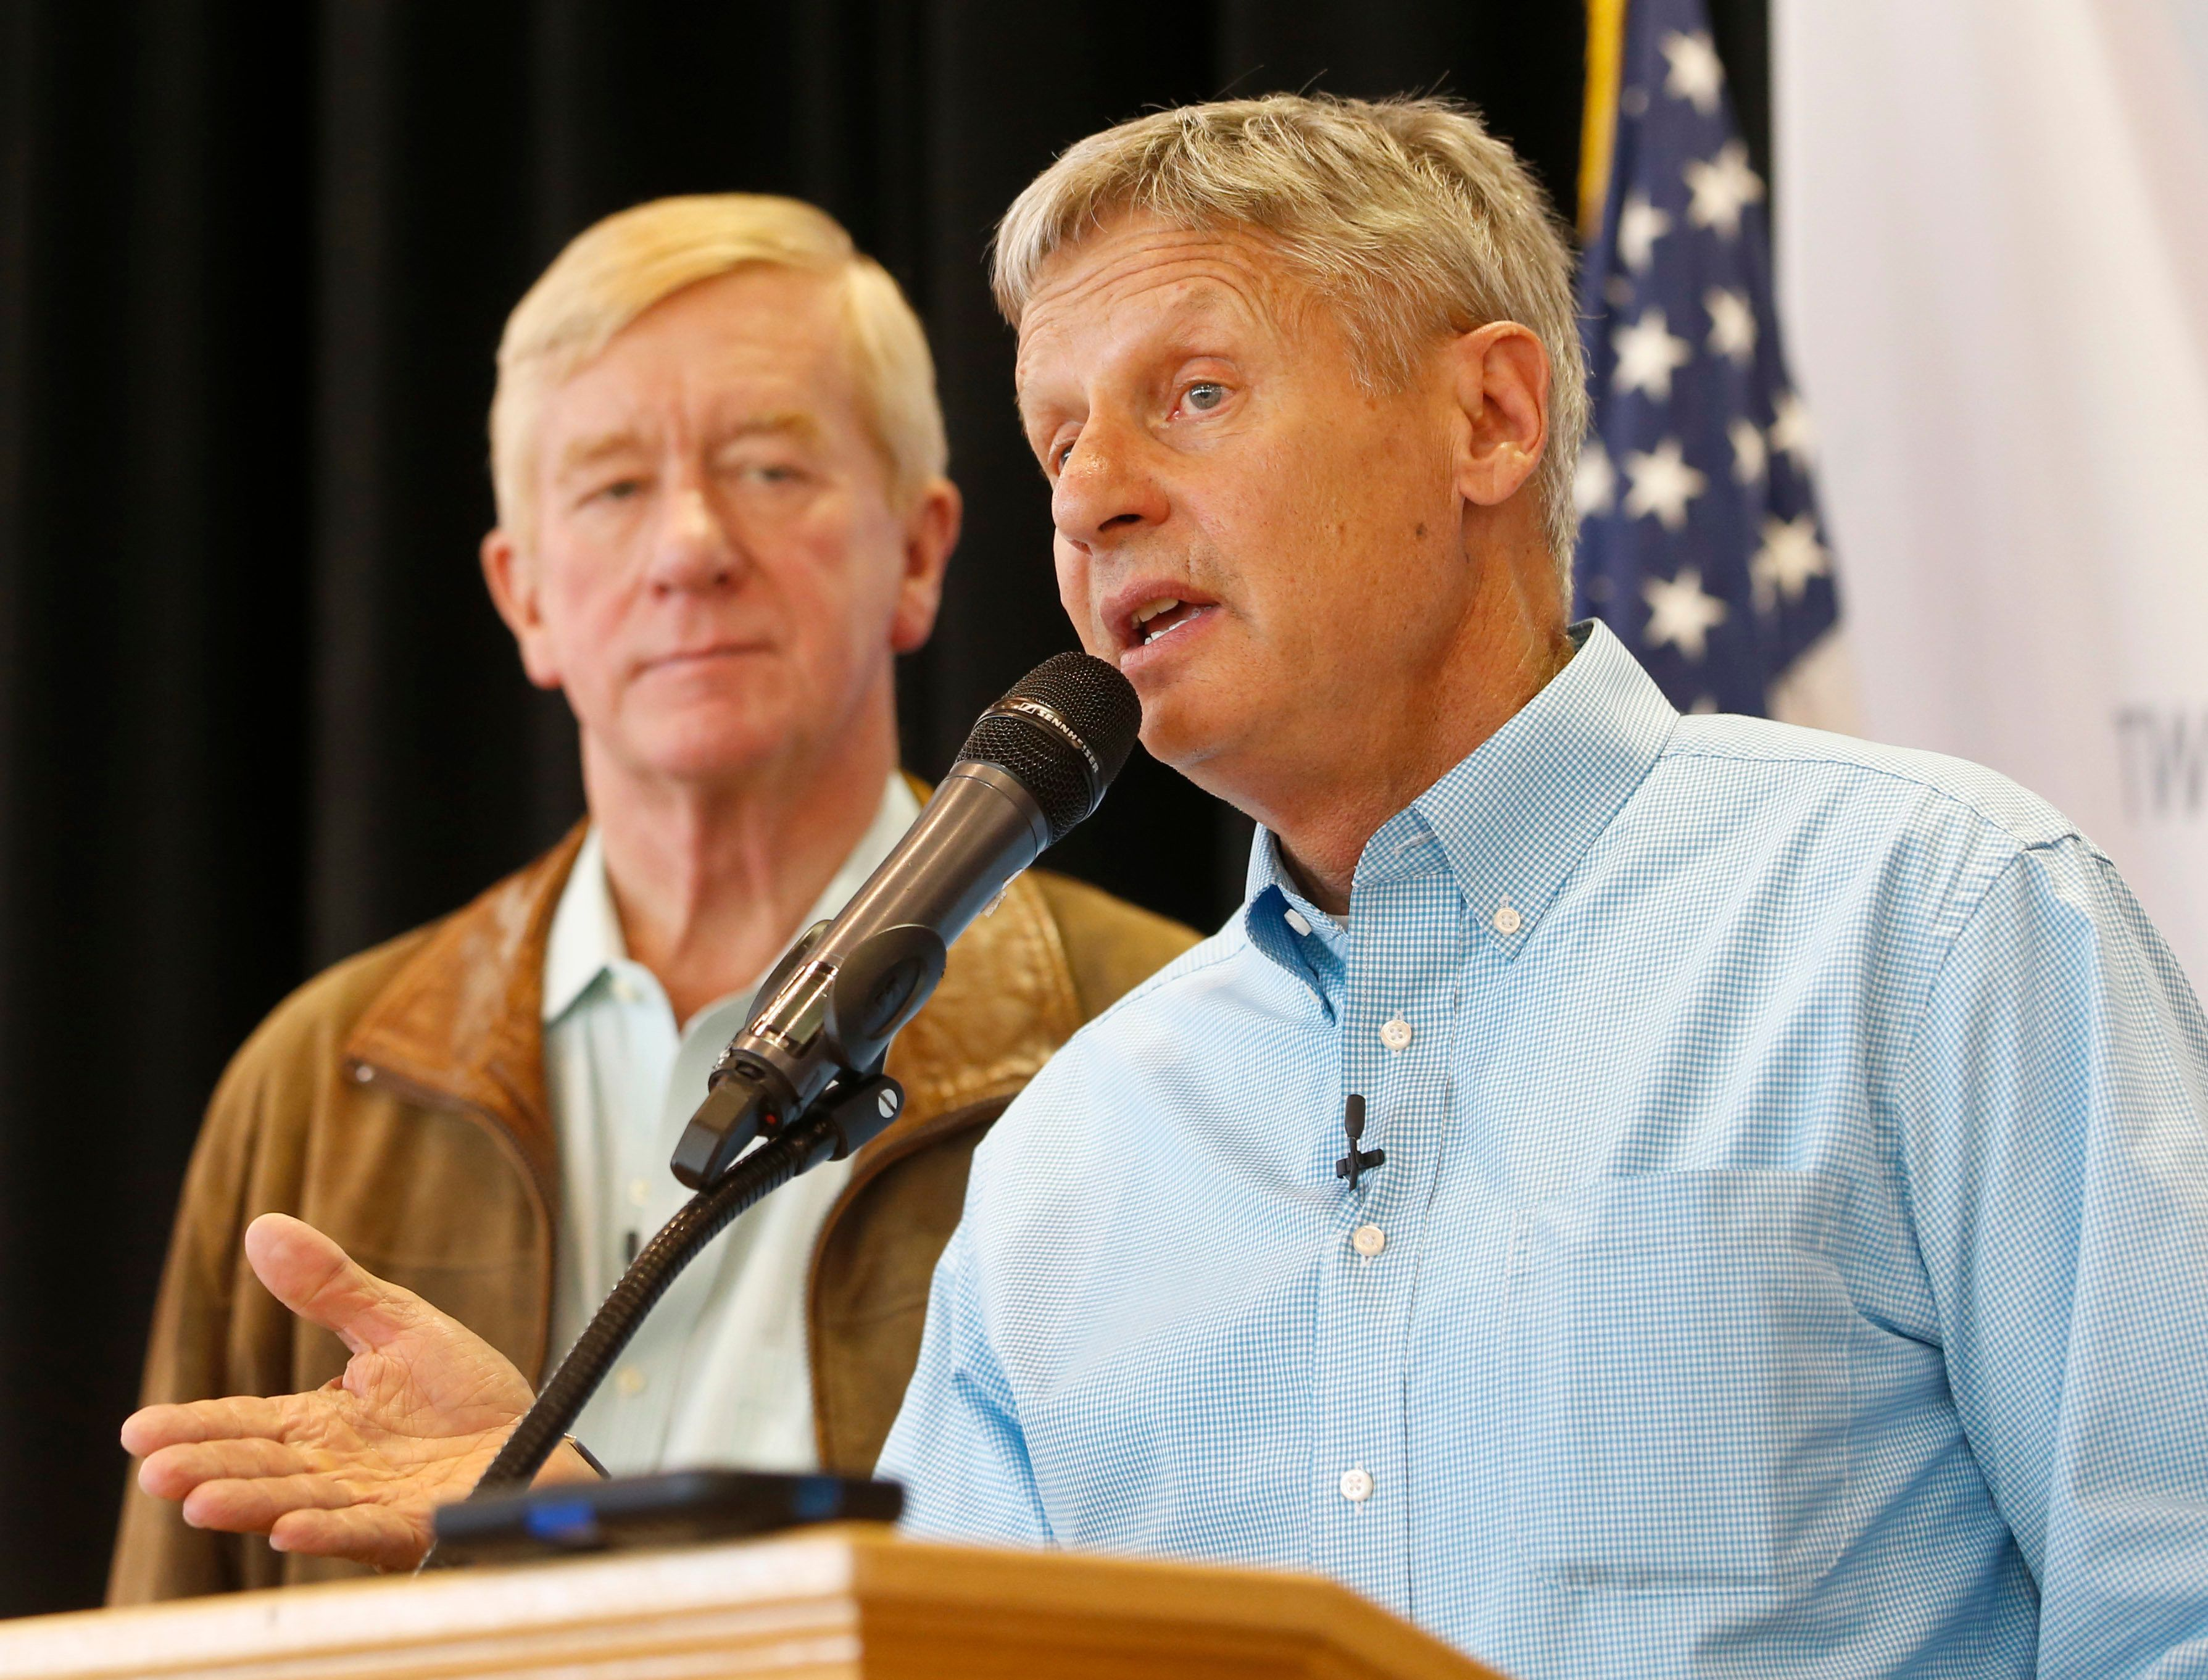 SALT LAKE CITY, UT - AUGUST 6: Libertarian presidential candidate Gary Johnson (R) and running mate, Bill Weld (L), talks to a crowd of supporters at a rally on August 6, 2015 in Salt Lake City, Utah. Johnson has spent the day campaigning in Salt Lake City, the home town of former republican presidential candidate Mitt Romney.  (Photo by George Frey/Getty Images)